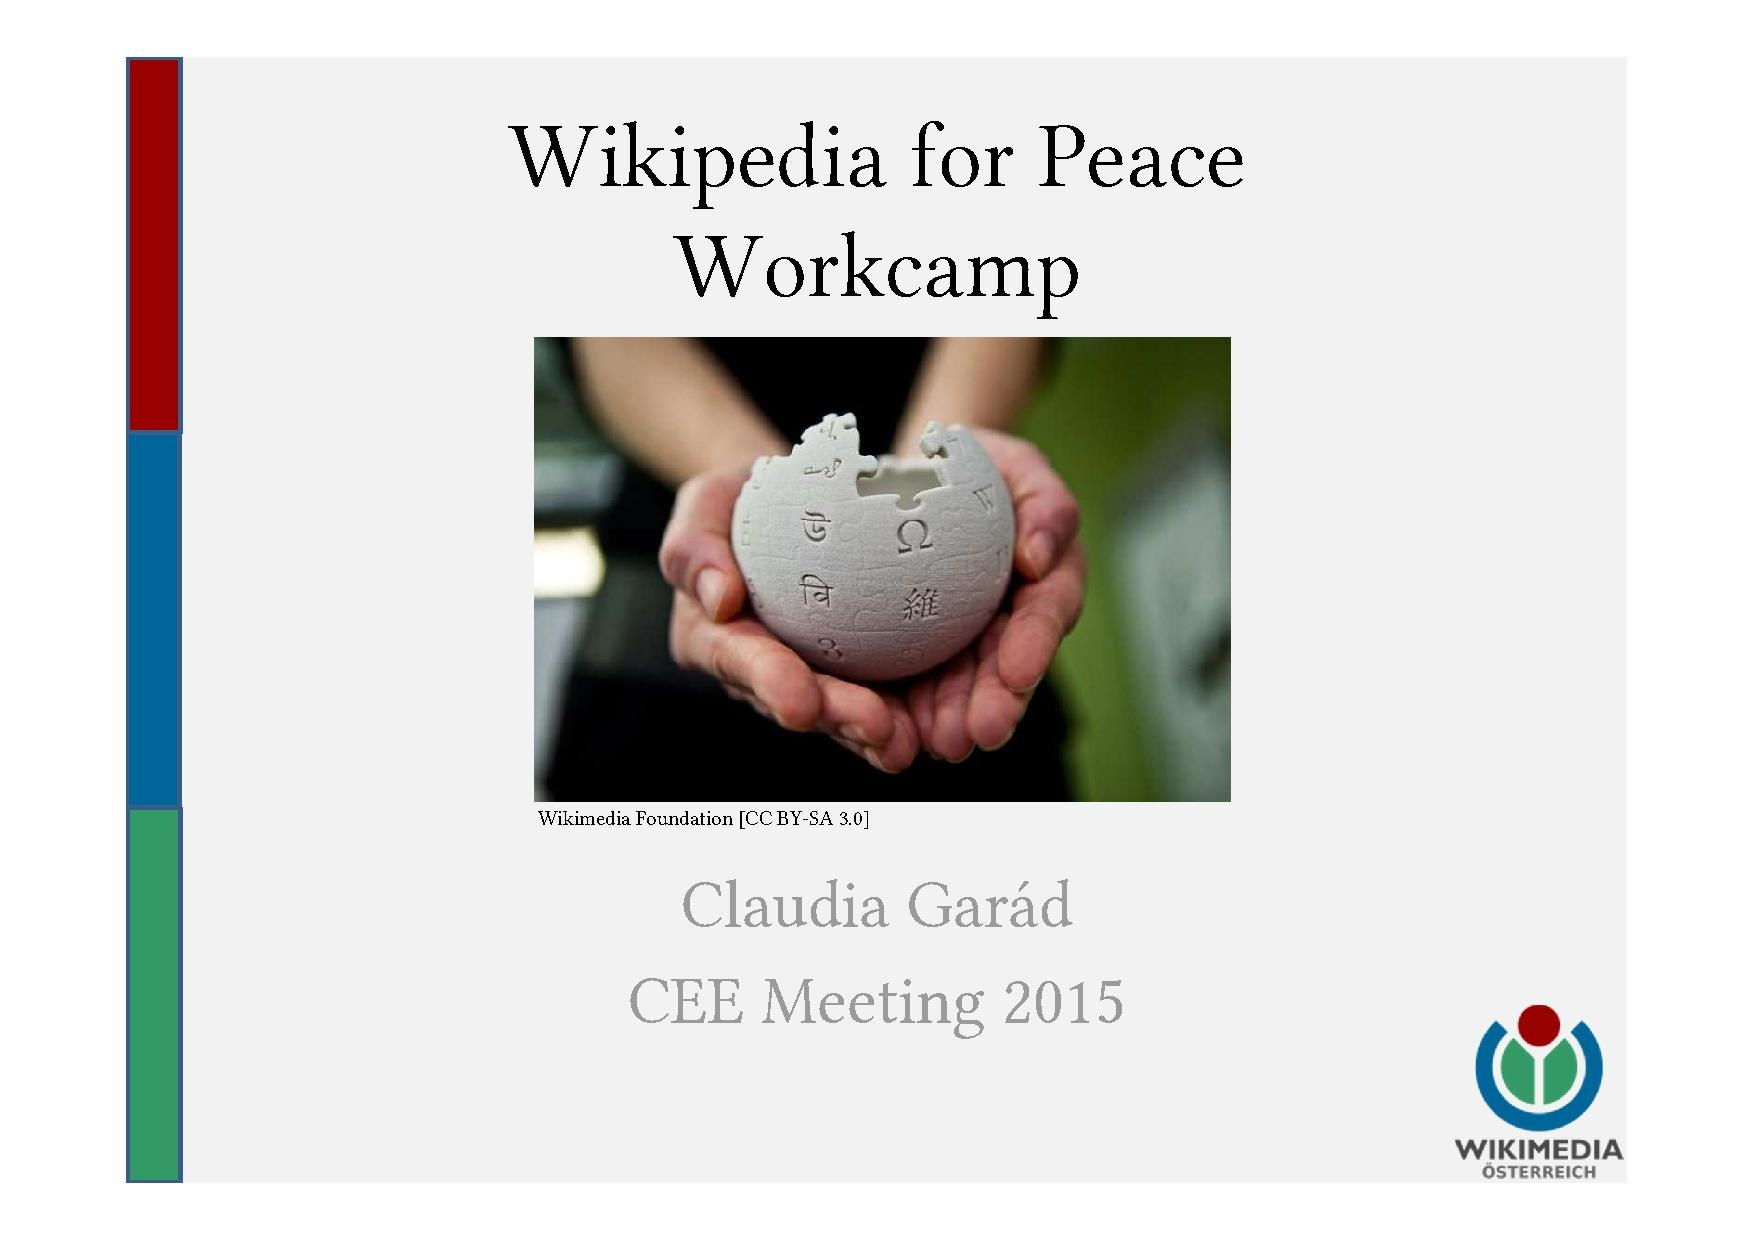 Presentation on the Wikipedia for Peace Workcamp in Austria in the context of the CEE meeting 2015